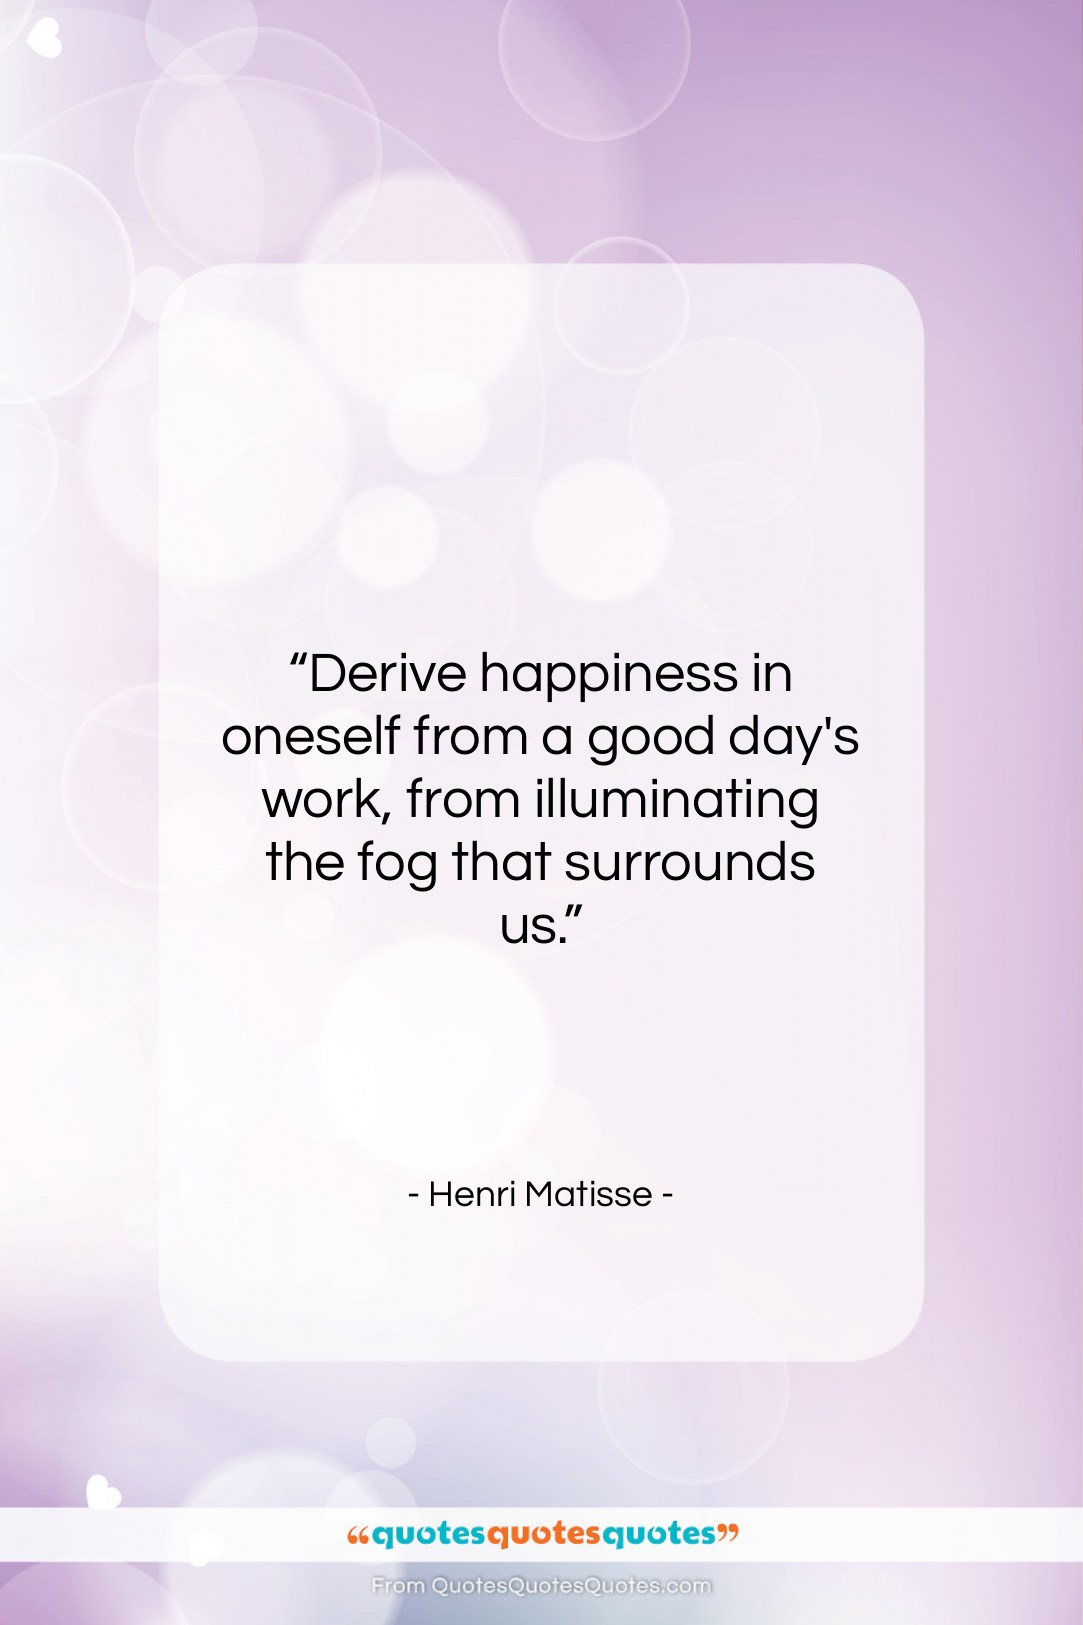 """Henri Matisse quote: """"Derive happiness in oneself from a good…""""- at QuotesQuotesQuotes.com"""